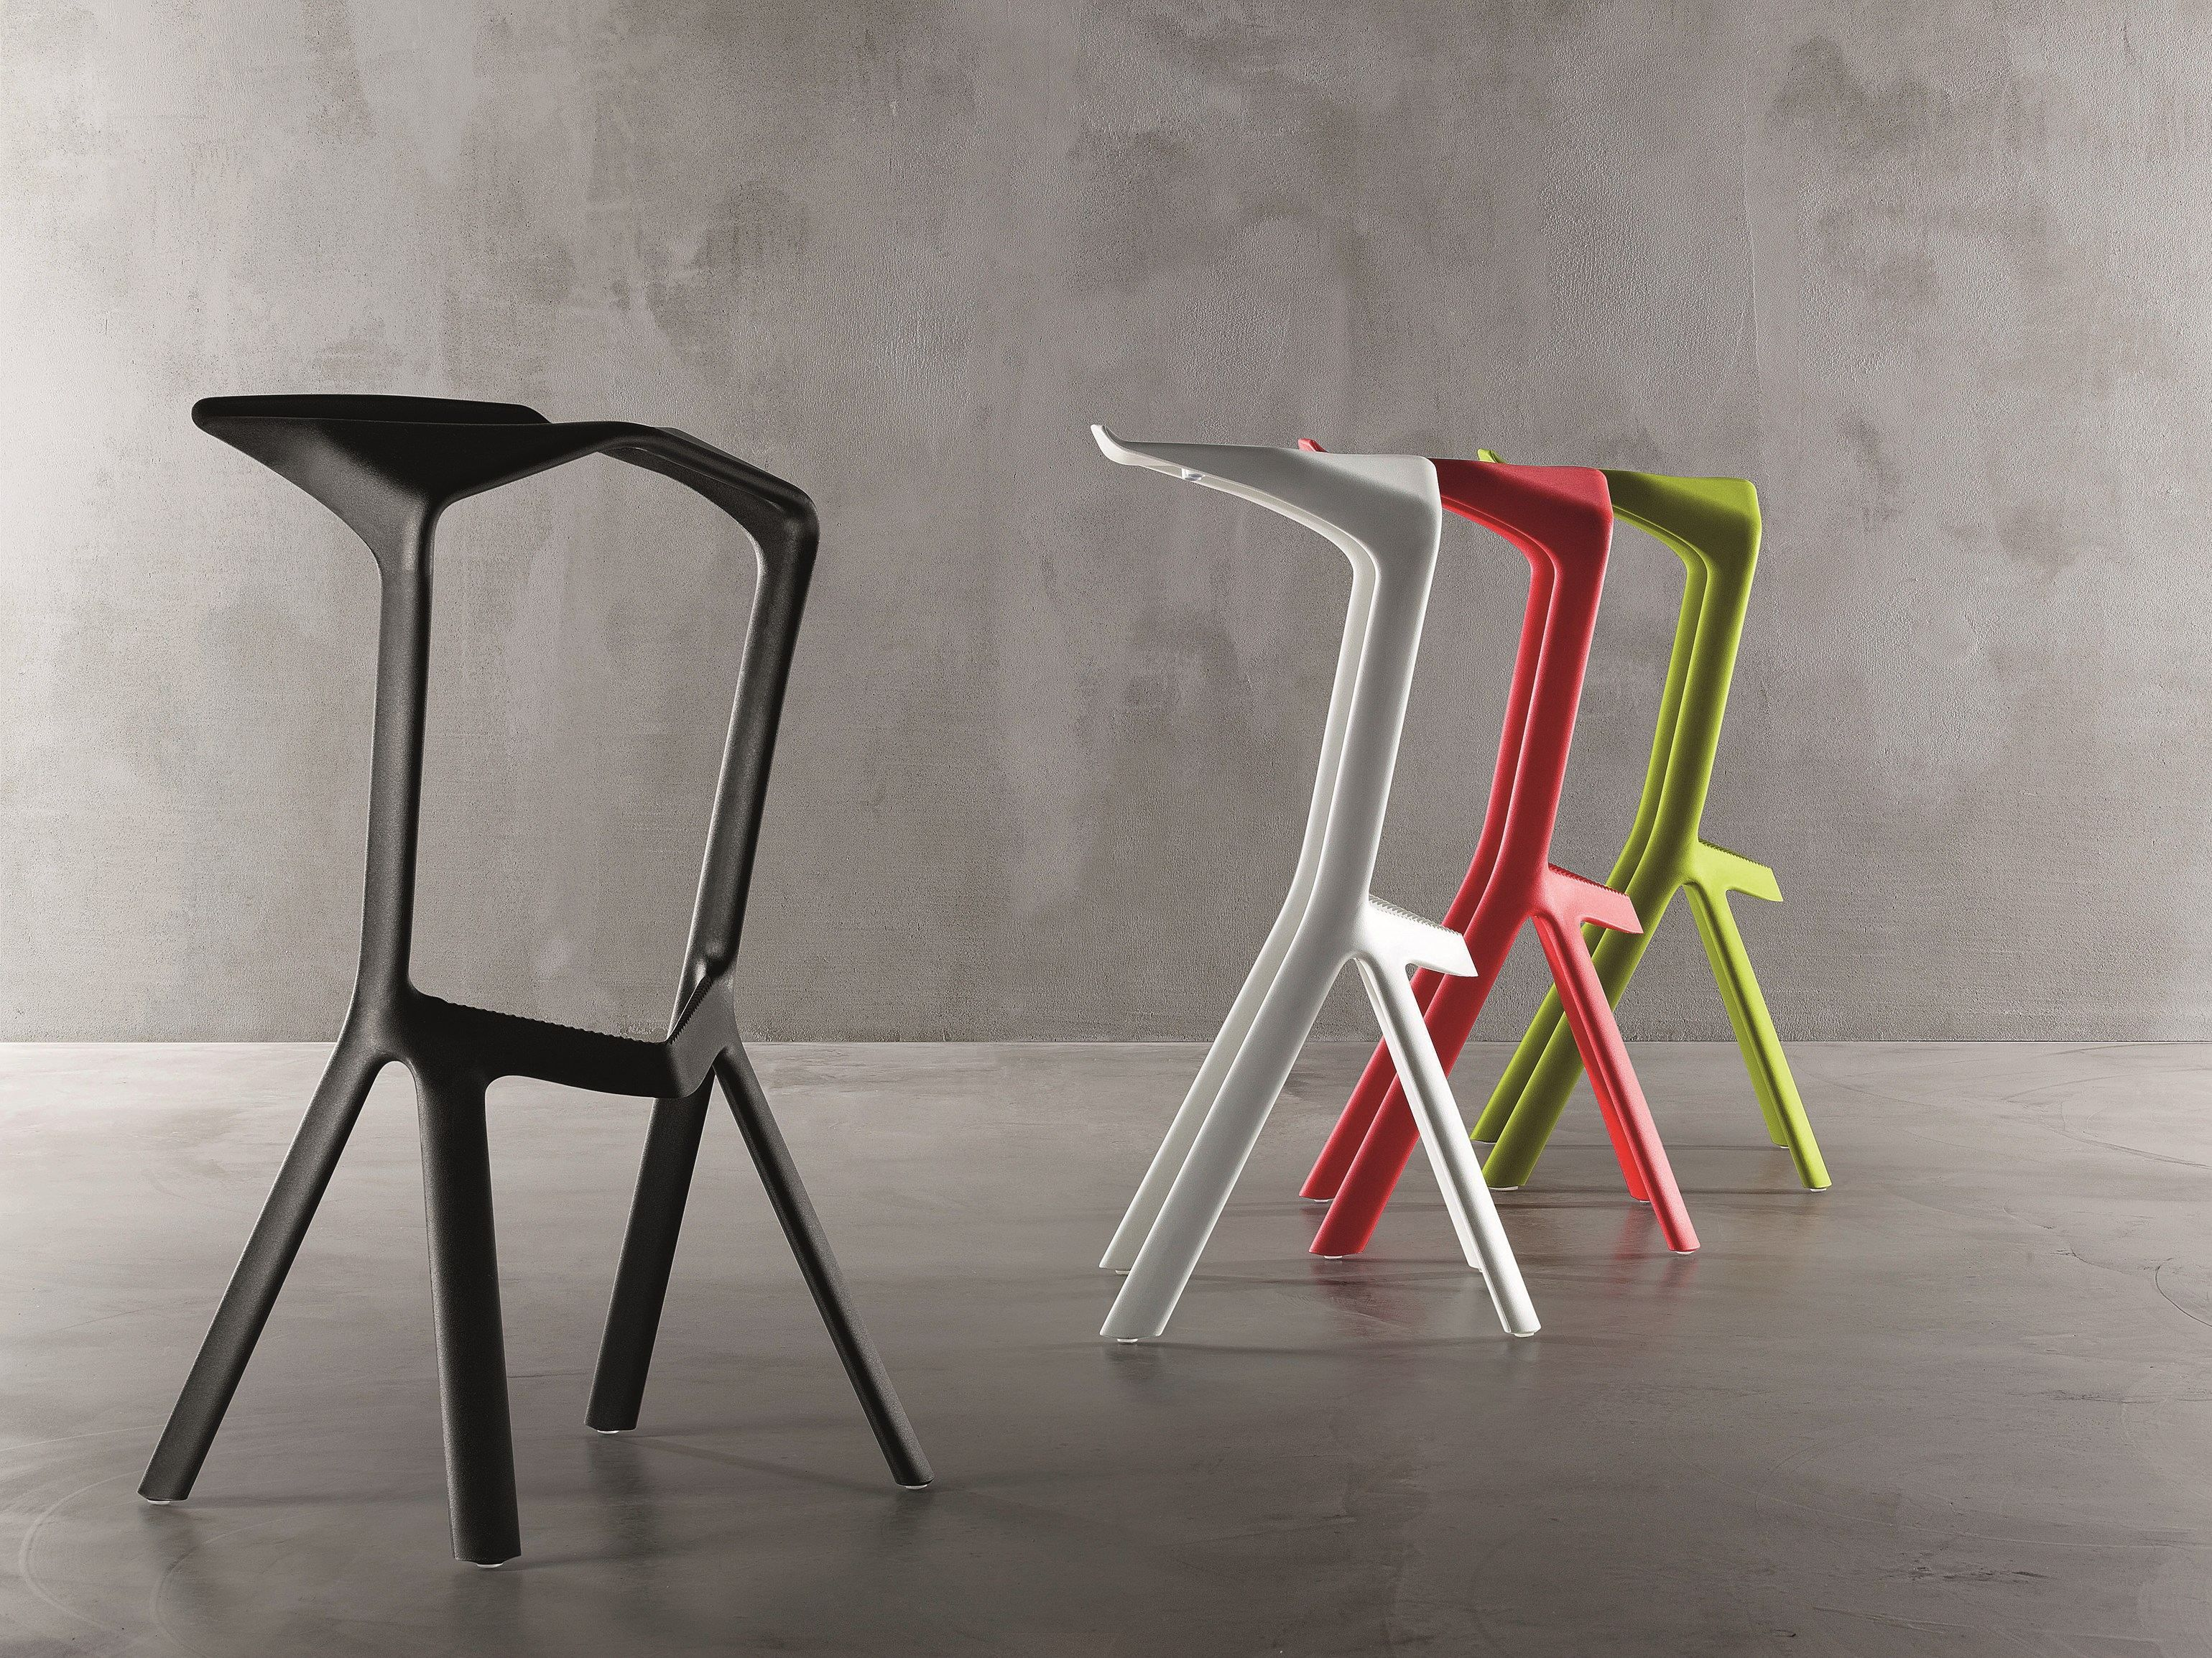 Acheter en ligne miura tabouret empilable by plank for Replica mobili design